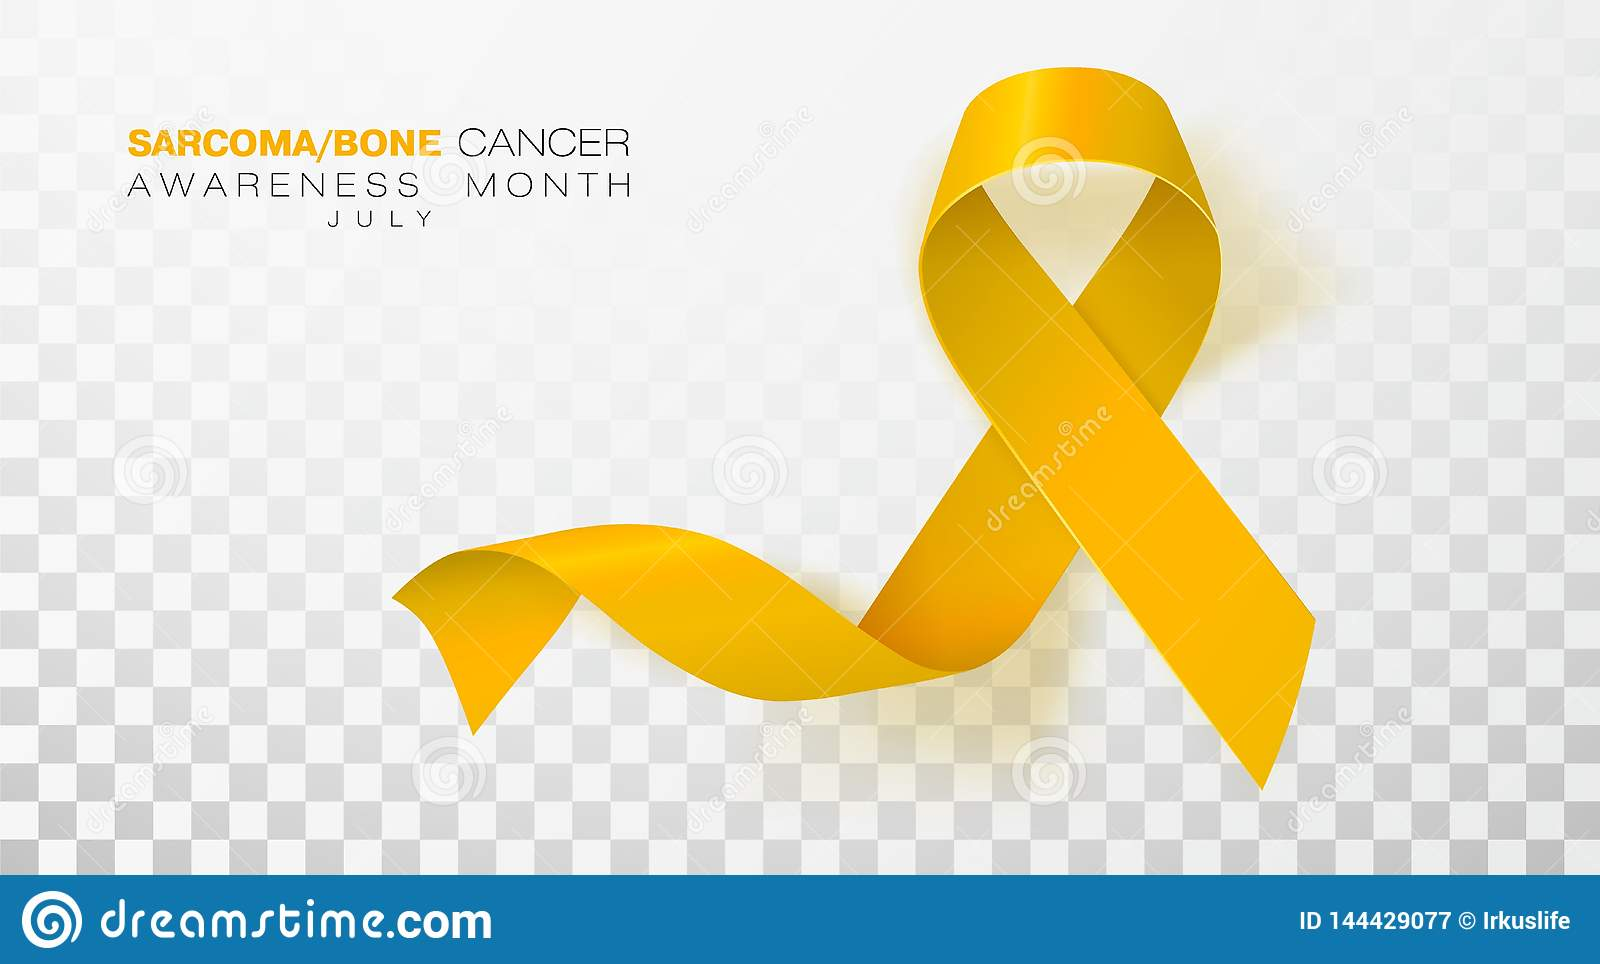 sarcoma cancer awareness week 2020